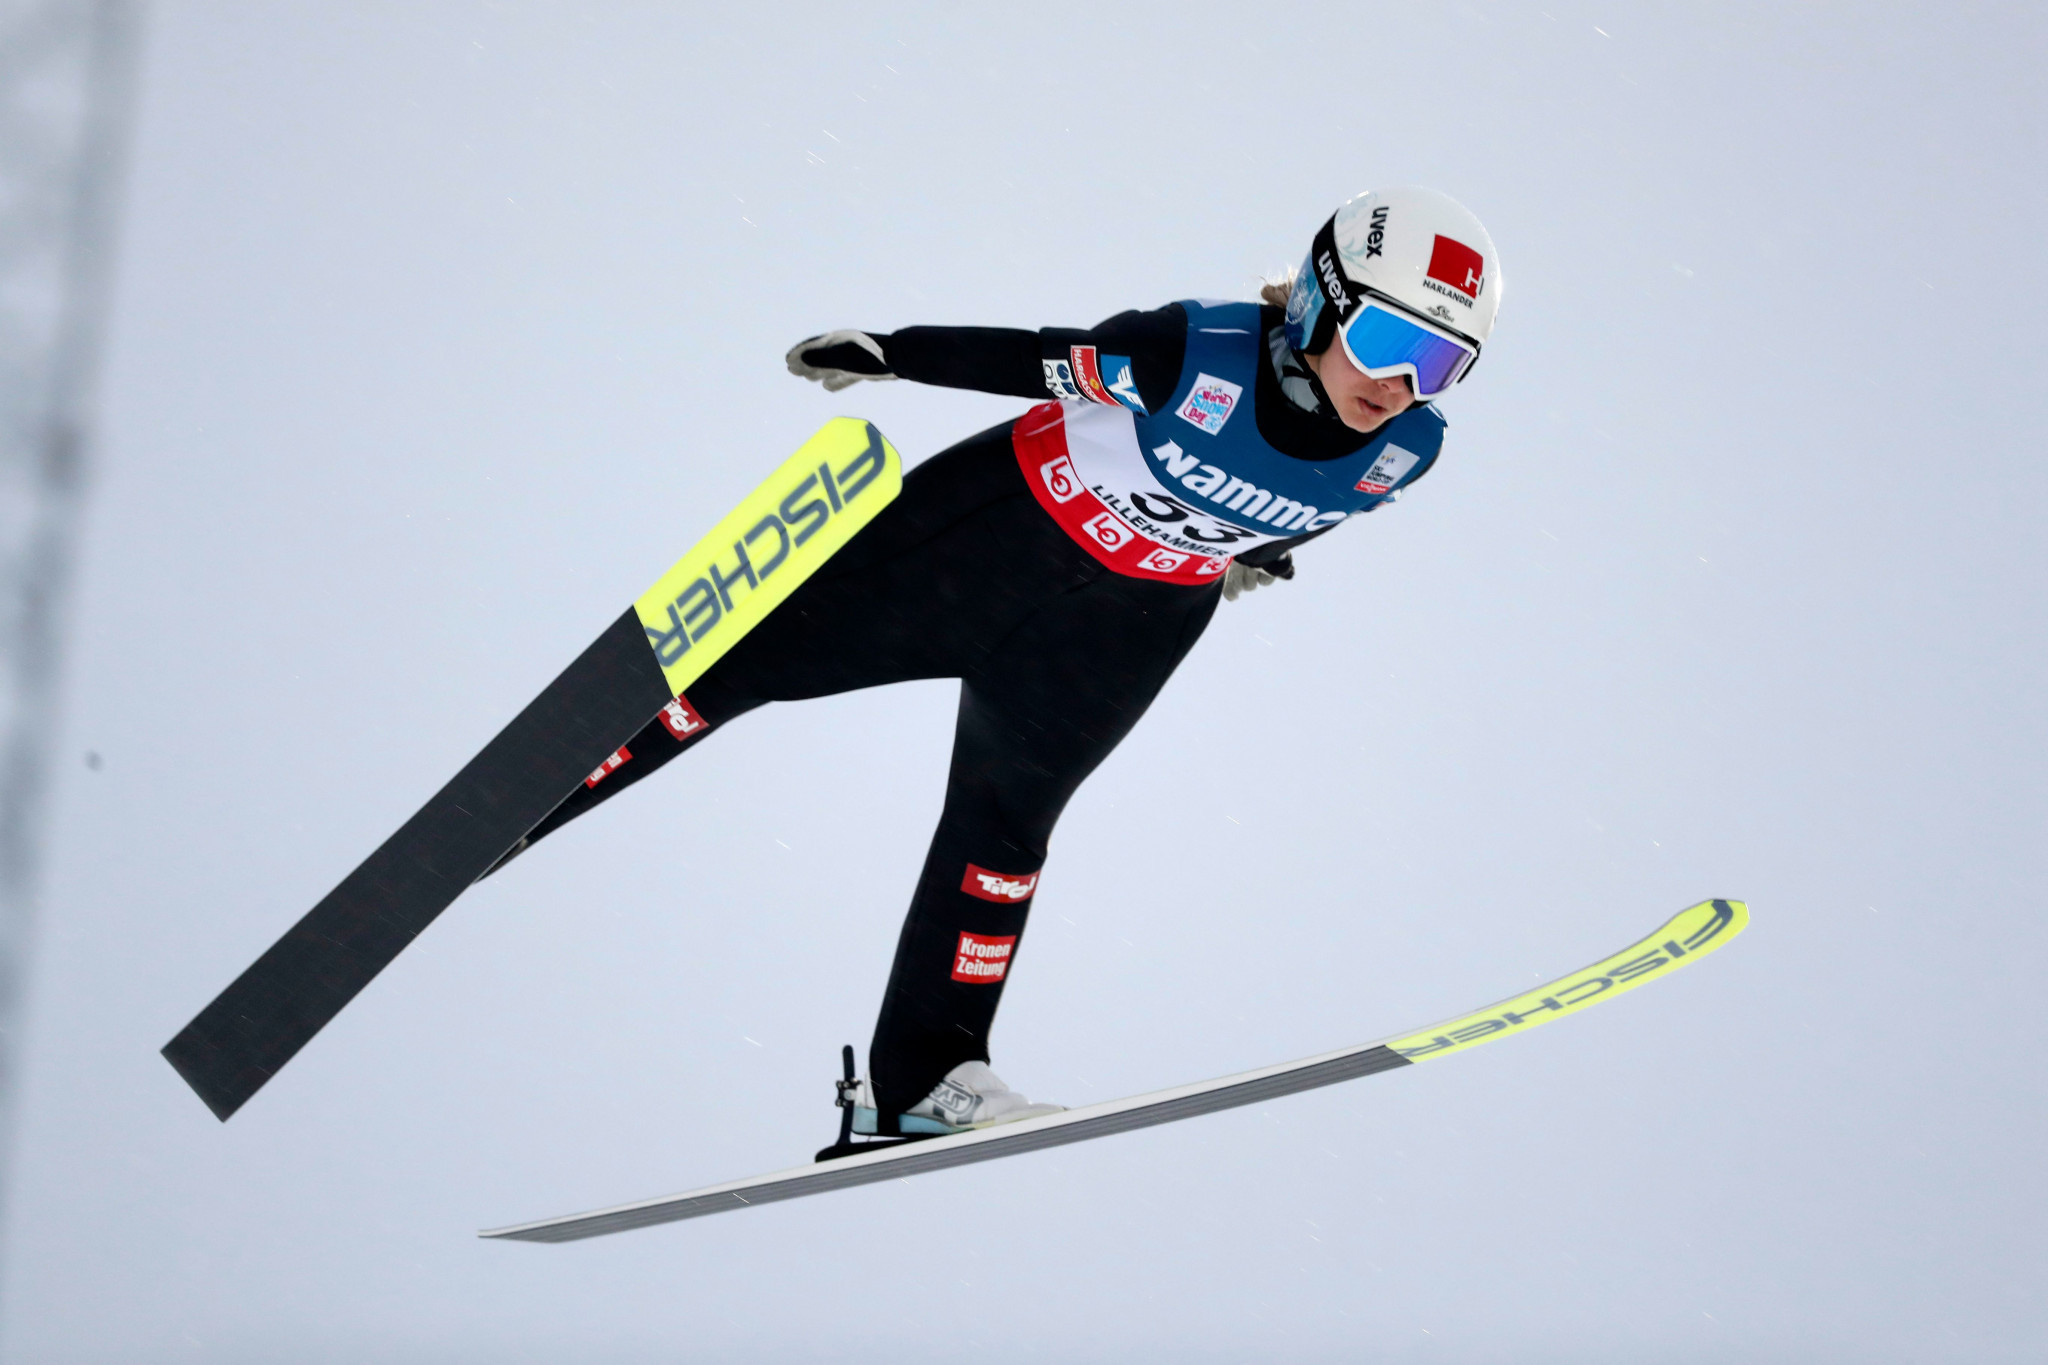 Hölzl overtakes Lundby in Ski Jumping World Cup standings after second win in Oberstdorf